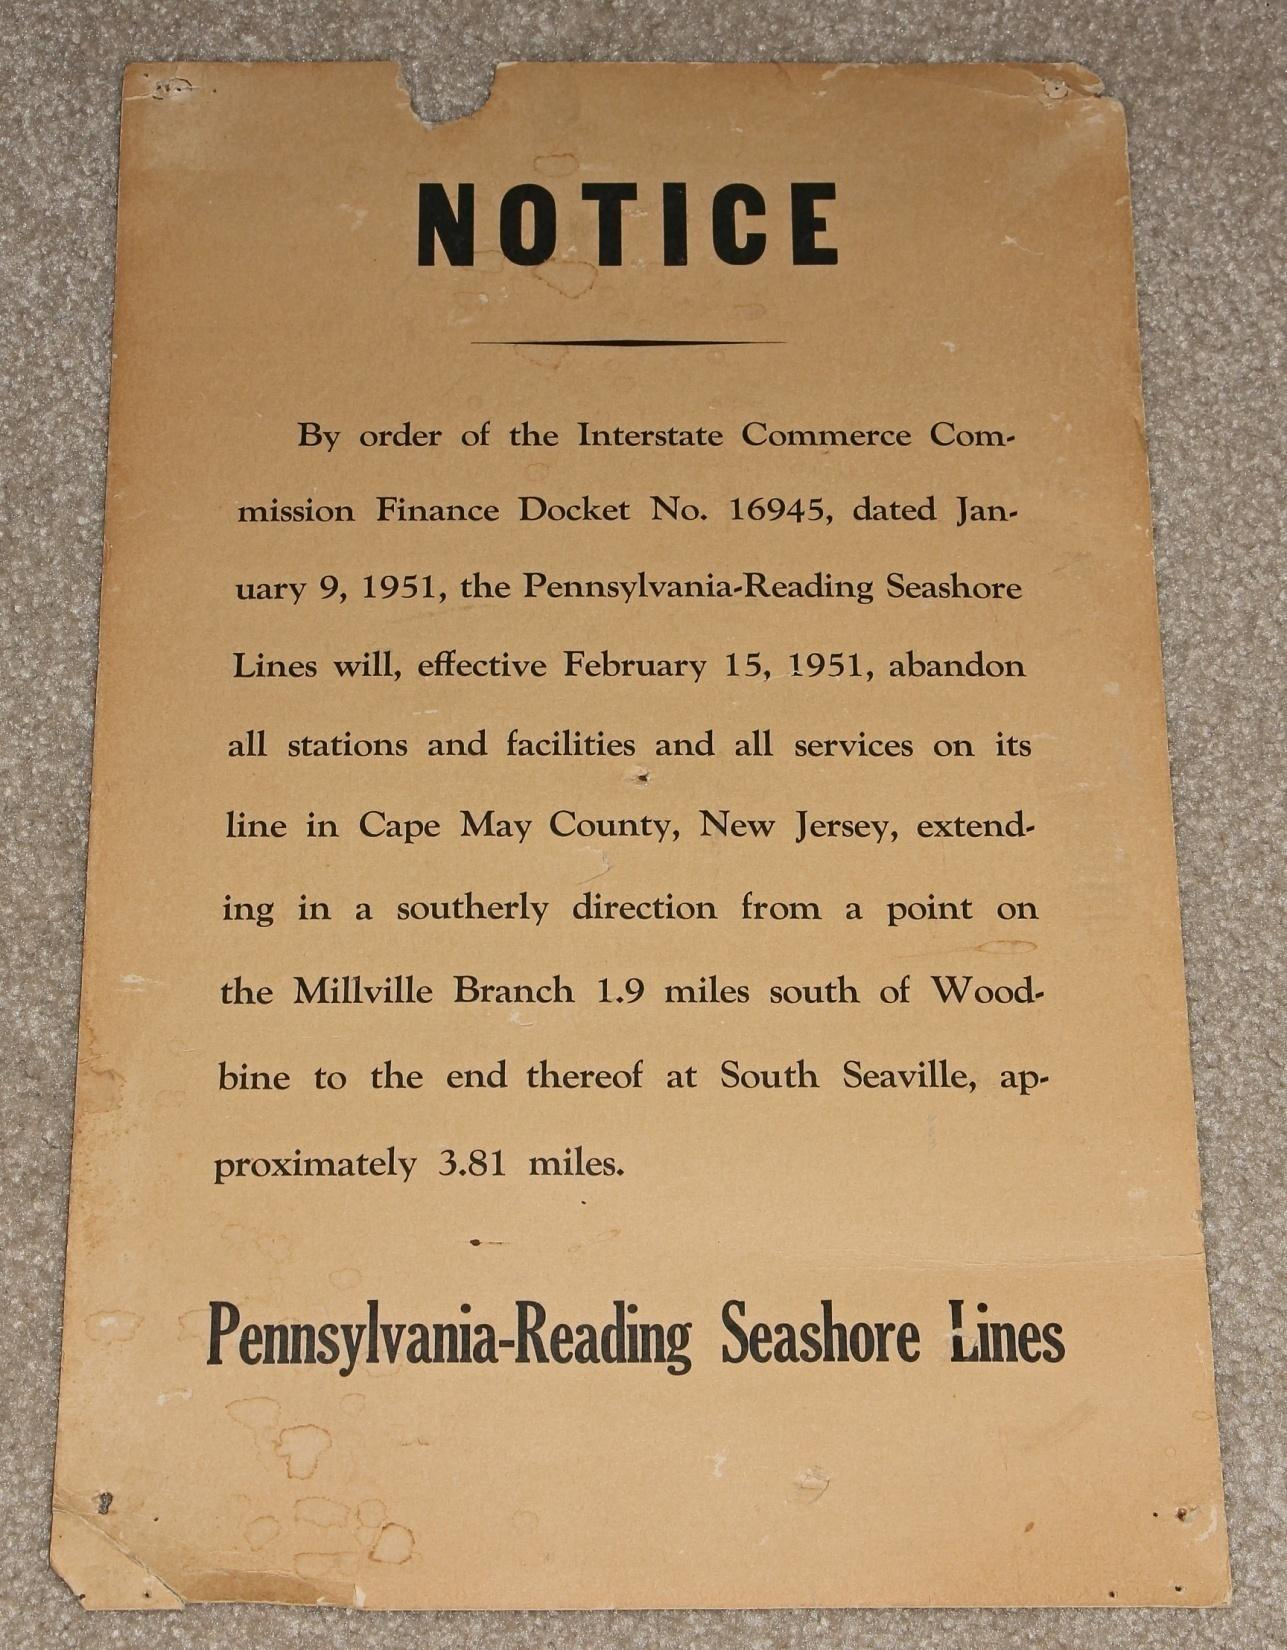 This notice advises of abandonment of the line to Seaville.